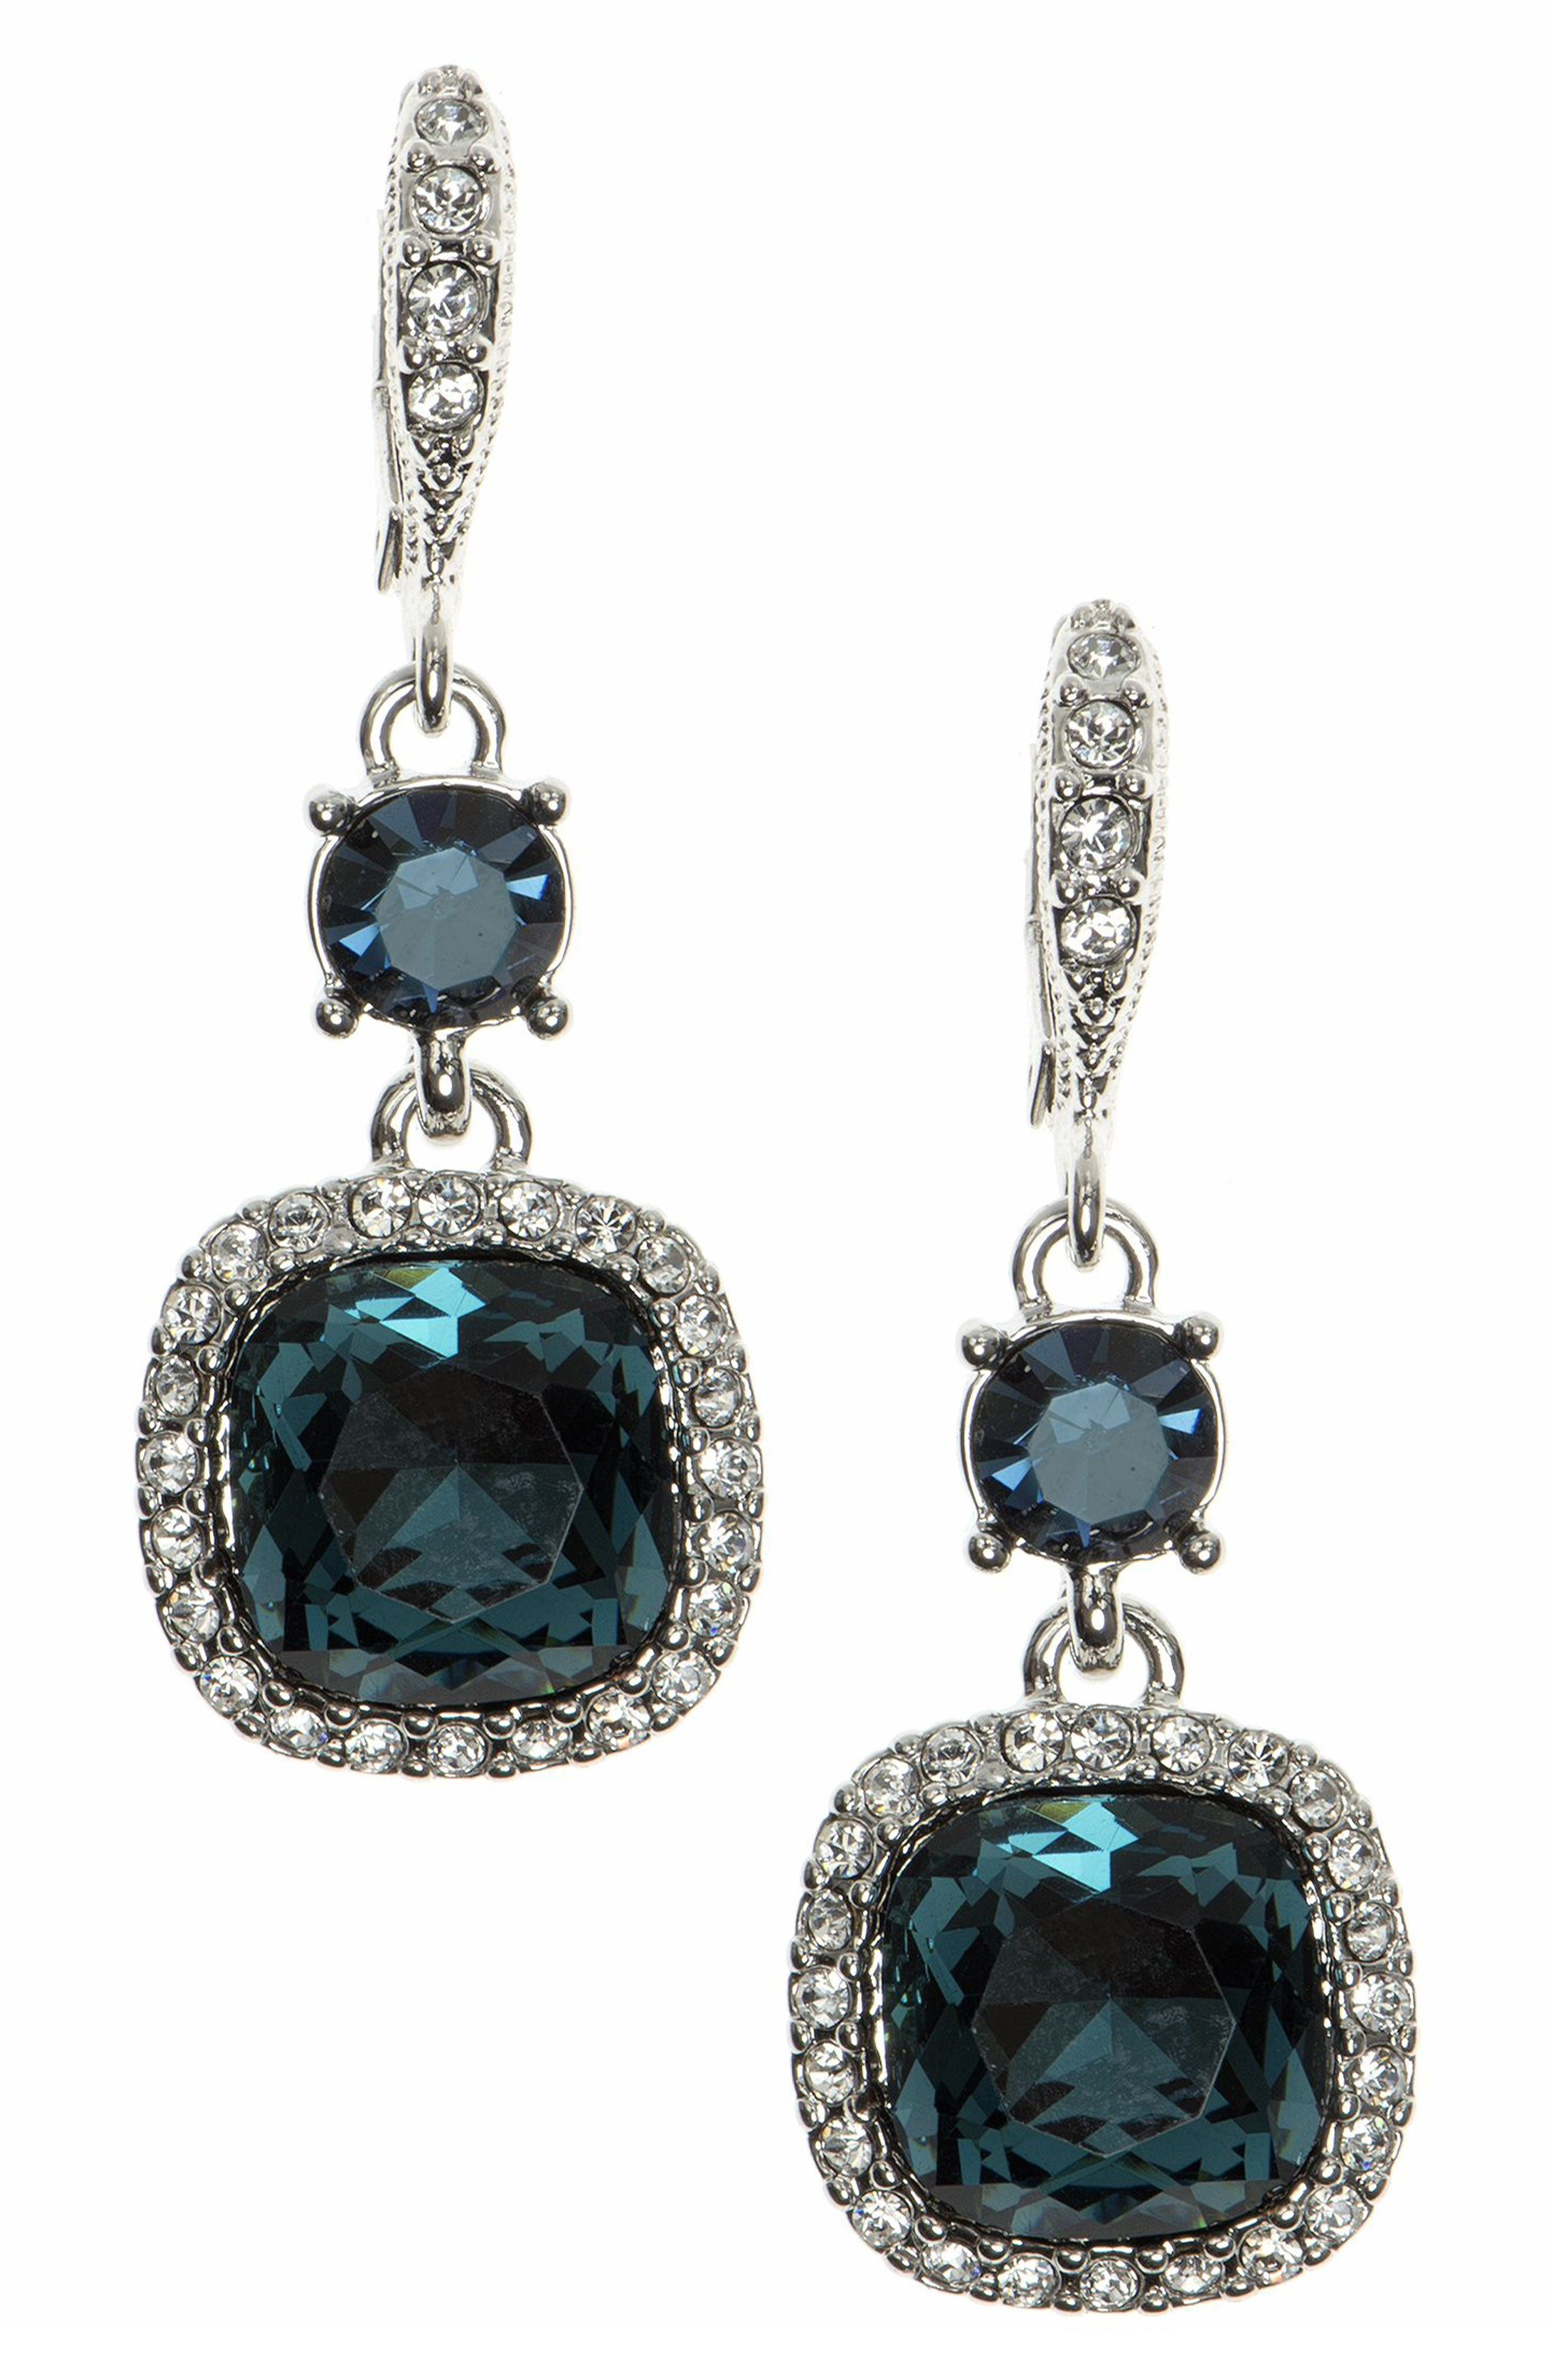 Crystal Drop Earrings,                         Main,                         color, Blue / Silver